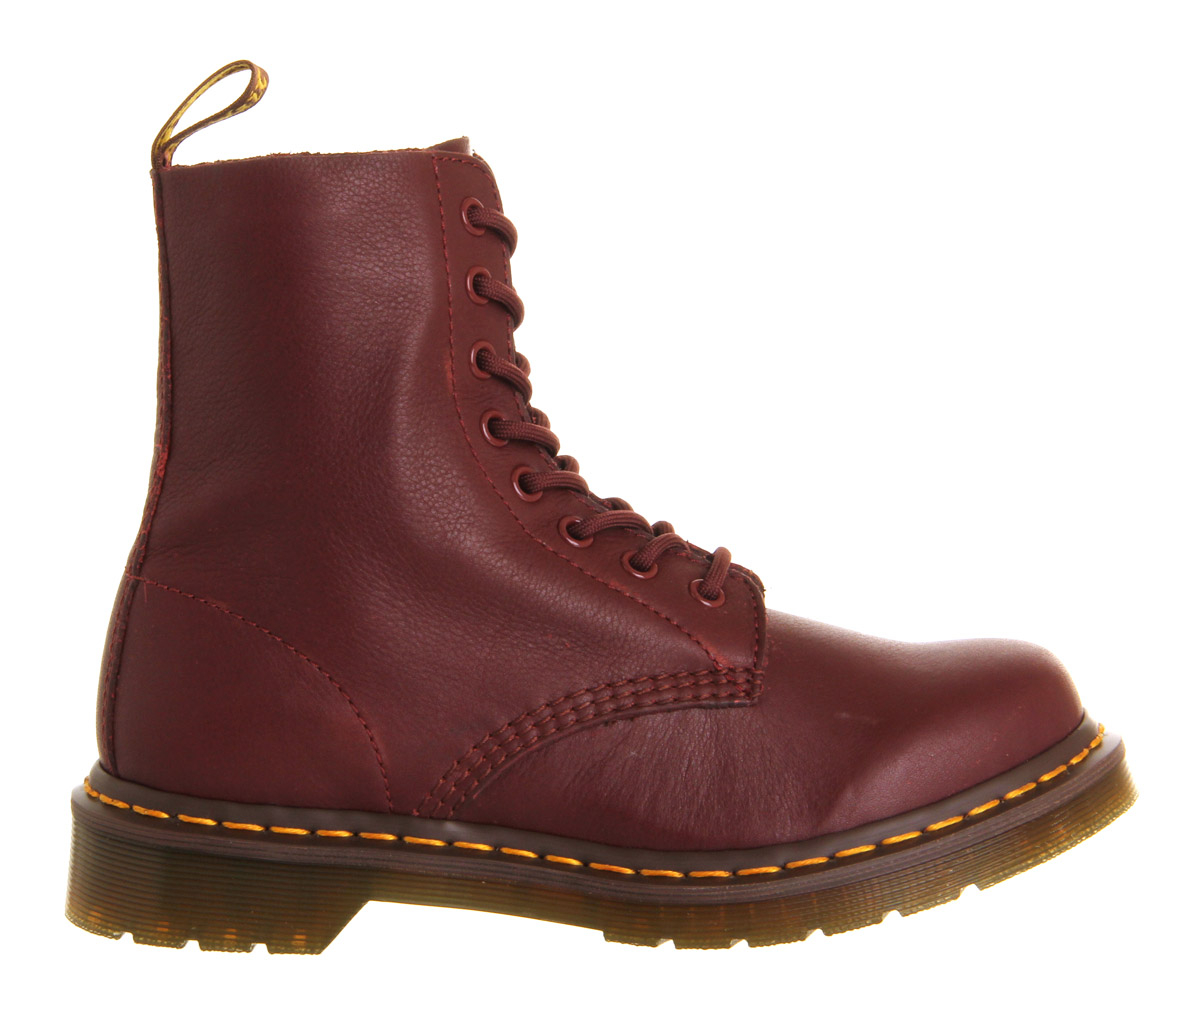 Dr Martens Leather Made In England Boots In Red Cherry